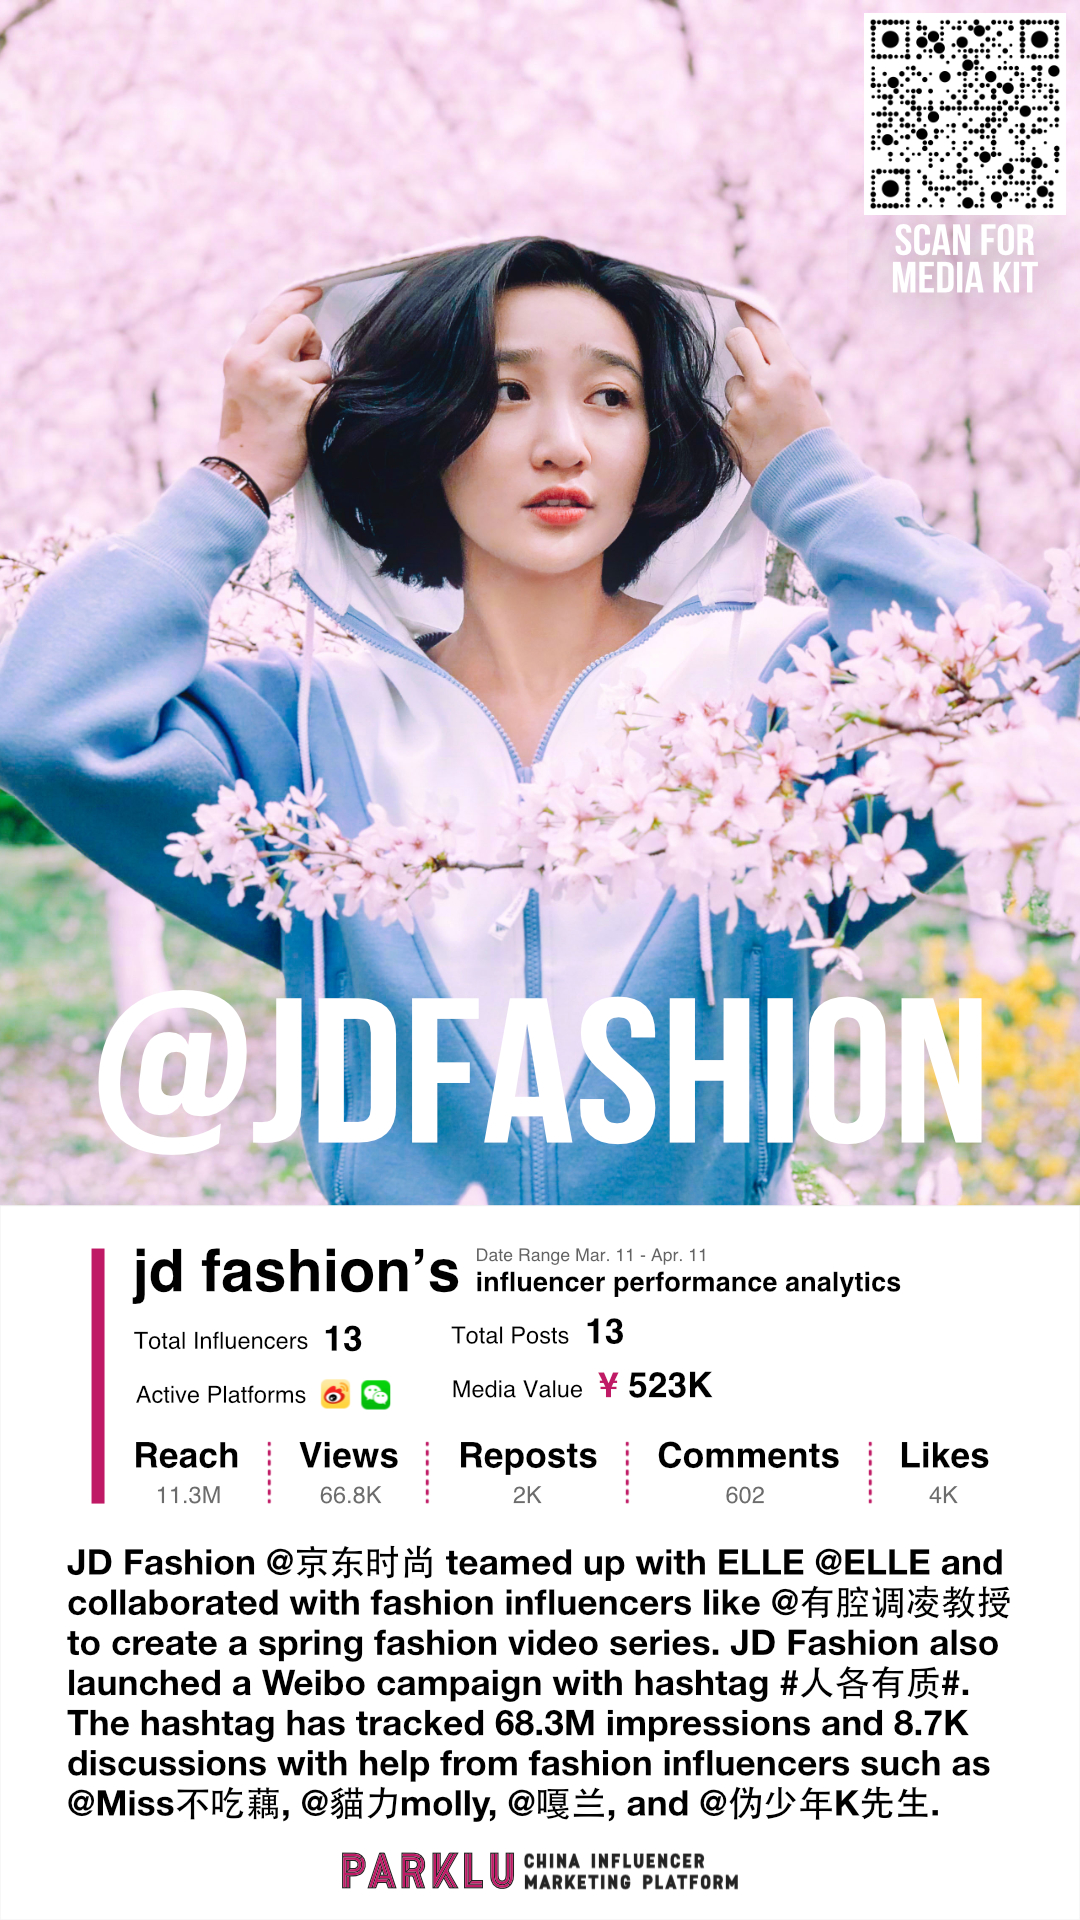 JD Fashion & ELLE Collaborate with Fashion Influencers